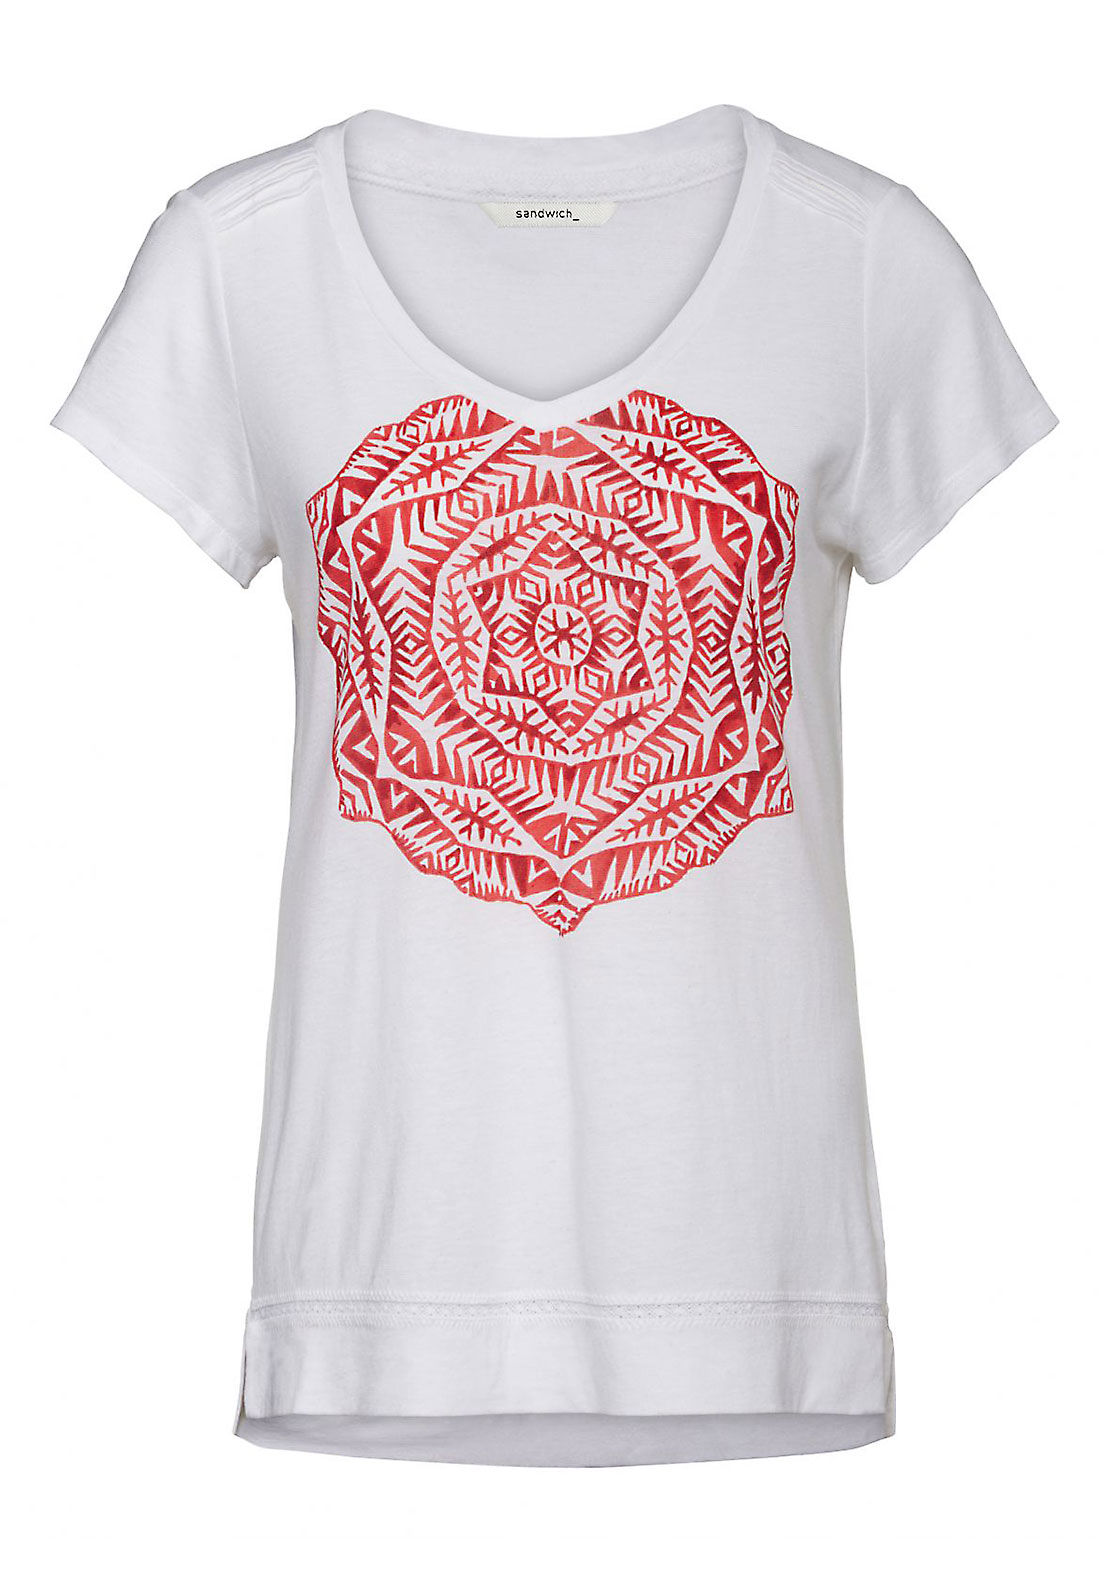 Sandwich Aztec Print Short Sleeve T-Shirt, White and Red